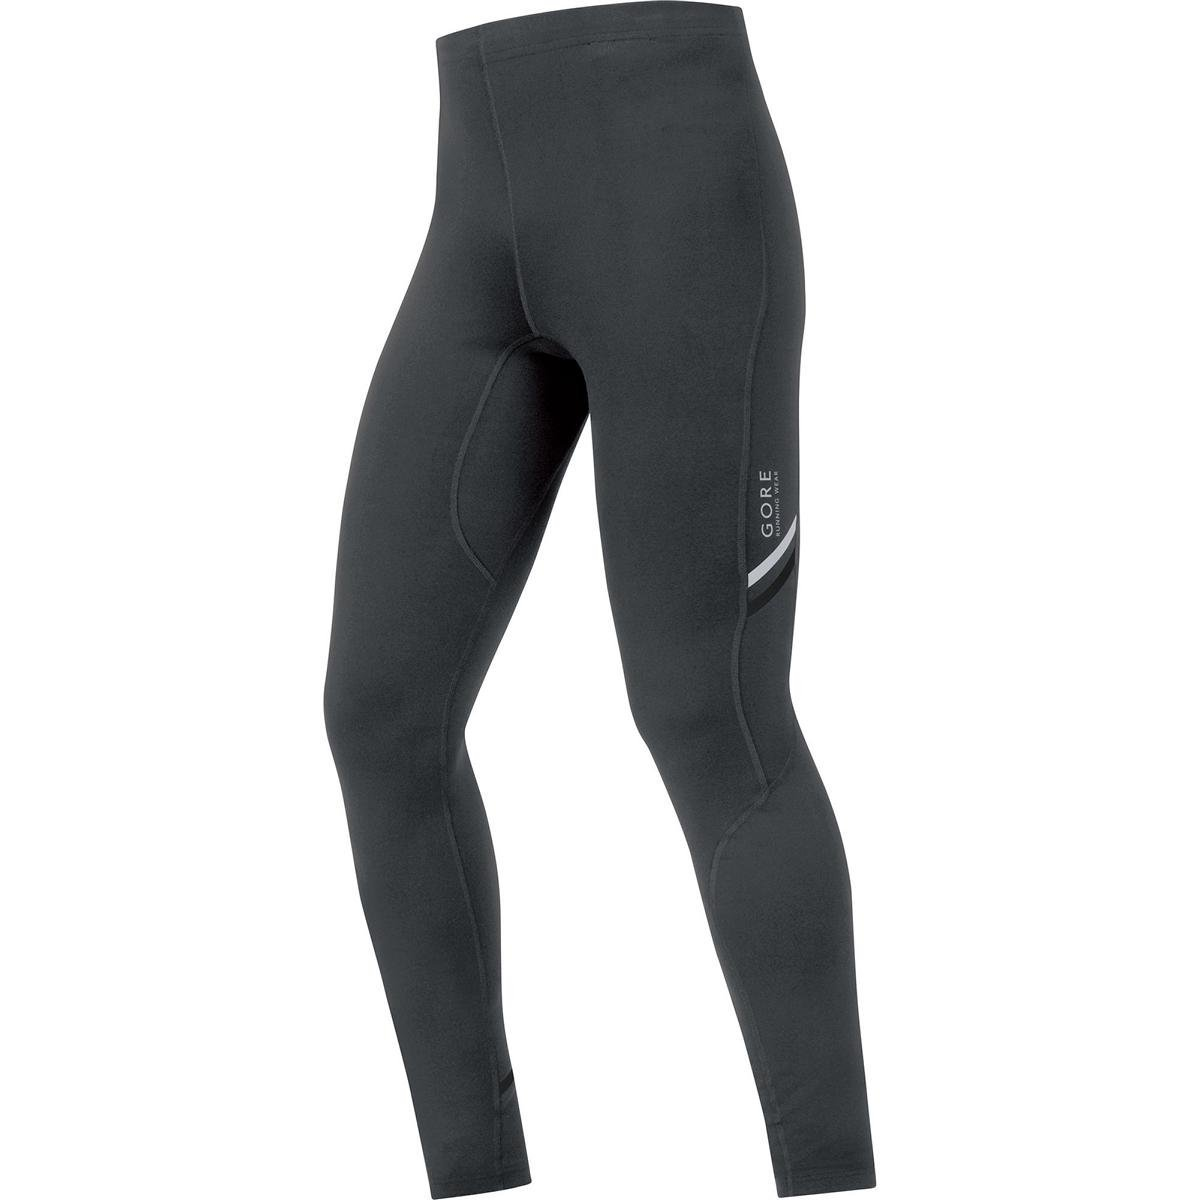 GORE RUNNING WEAR, Uomo, Calzamaglia Corsa, GORE Selected Fabrics, MYTHOS 2.0 Tights long, TMYTLM